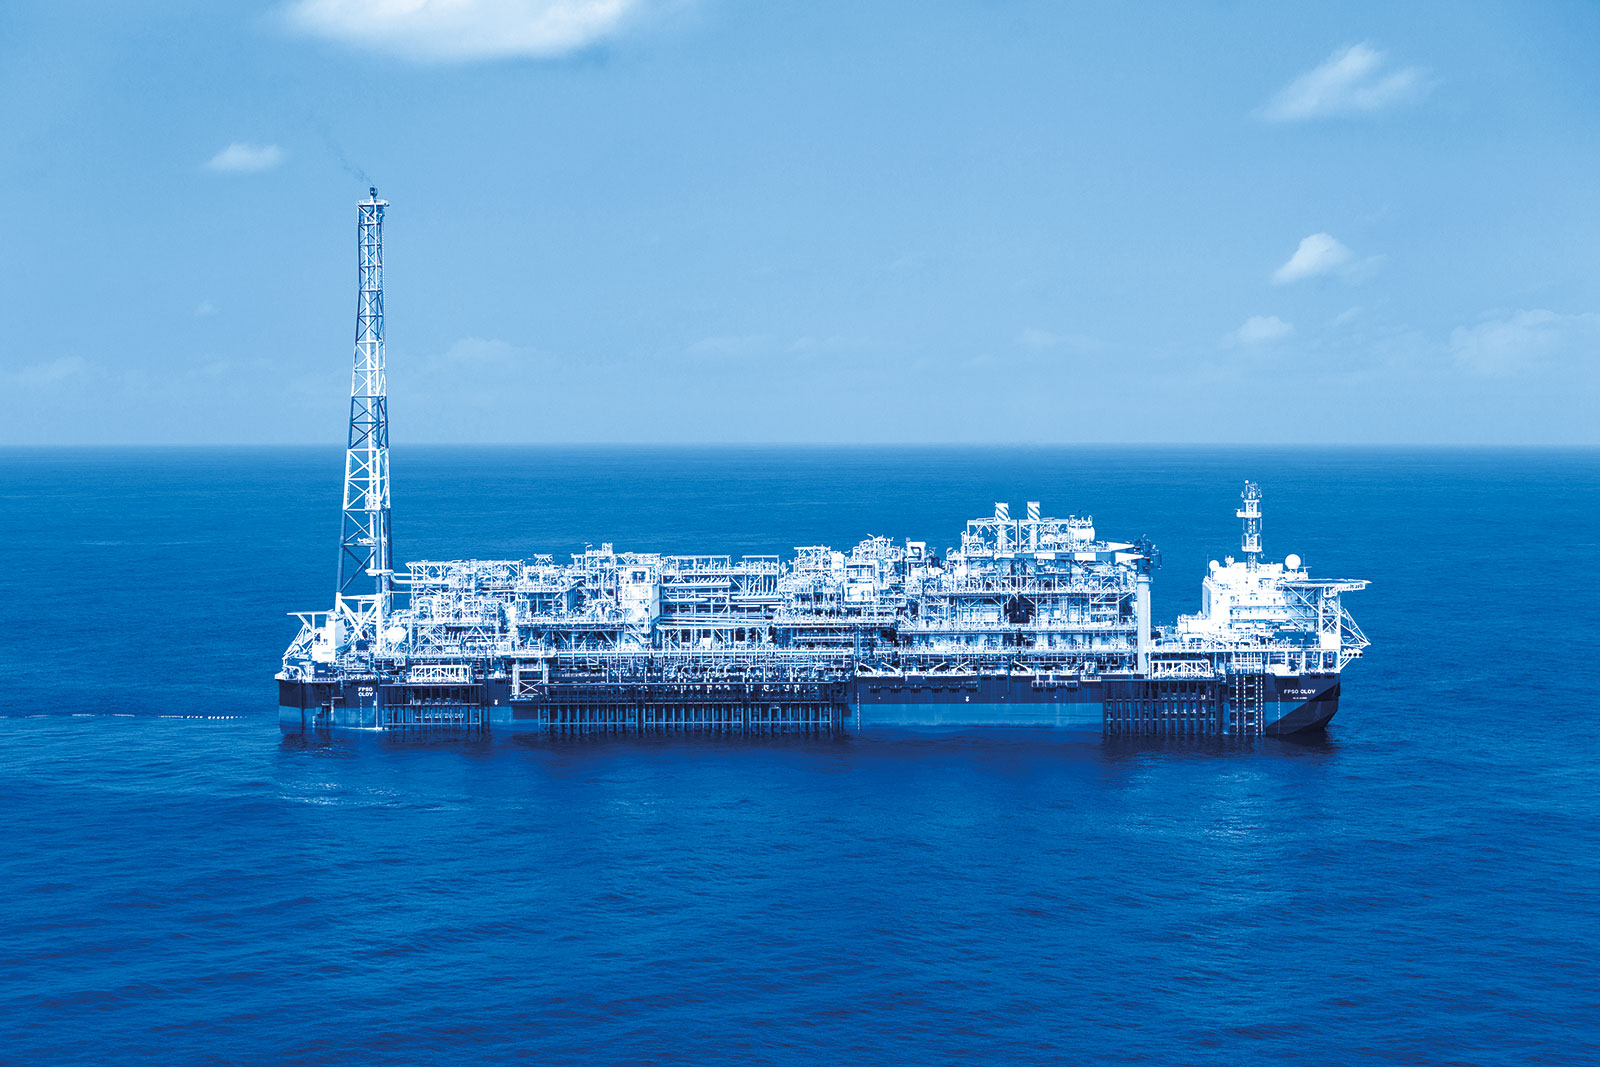 Floating production unit of the Clov field, Angola (FPSO).